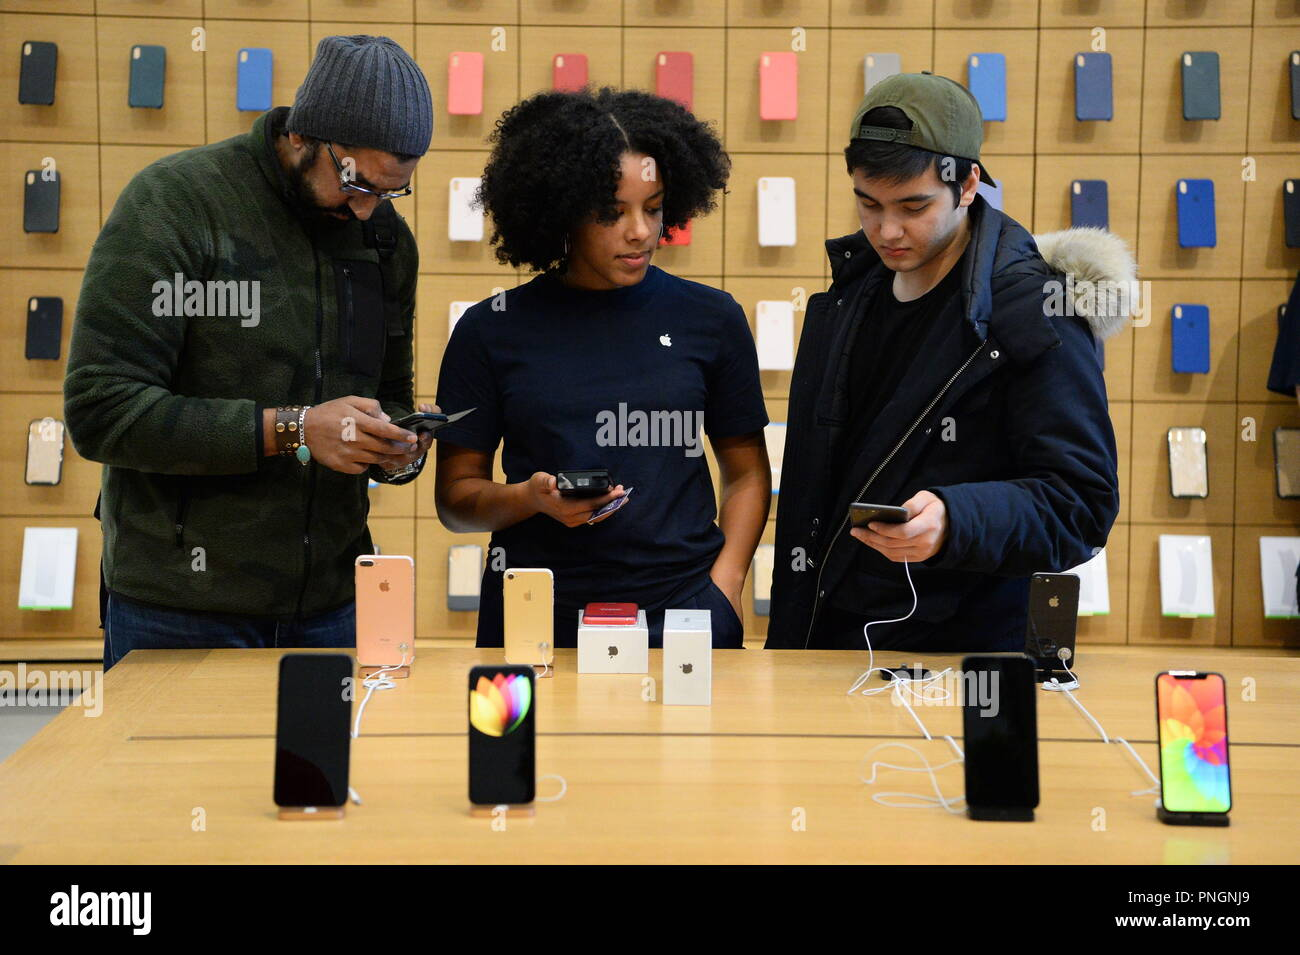 Customers in the Apple Store in Regent Street, central London try out the new products, as the iPhone XS and XS Max go on sale in the UK for the first time, alongside the Apple Watch Series 4. - Stock Image